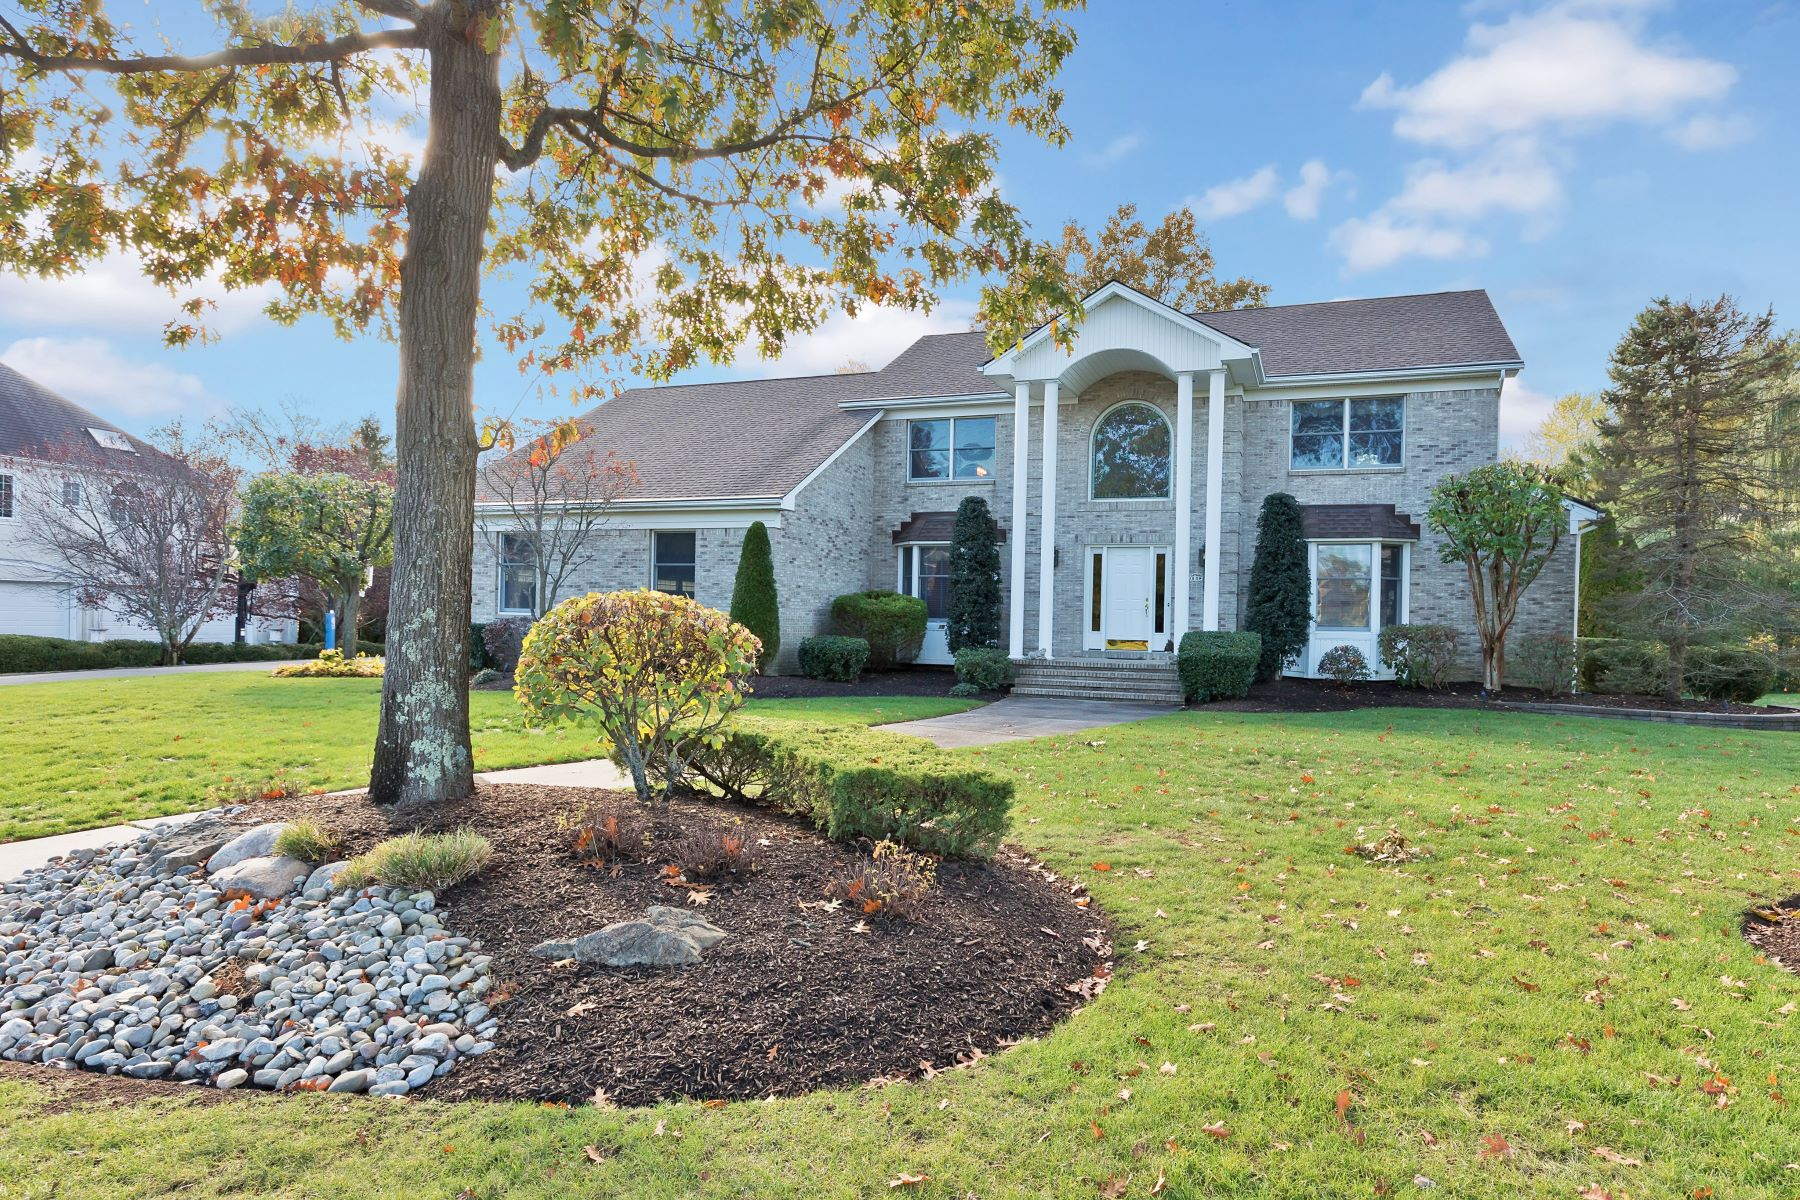 Single Family Homes for Sale at Wayside Lifestyle 19 Oxford Drive Ocean, New Jersey 07712 United States